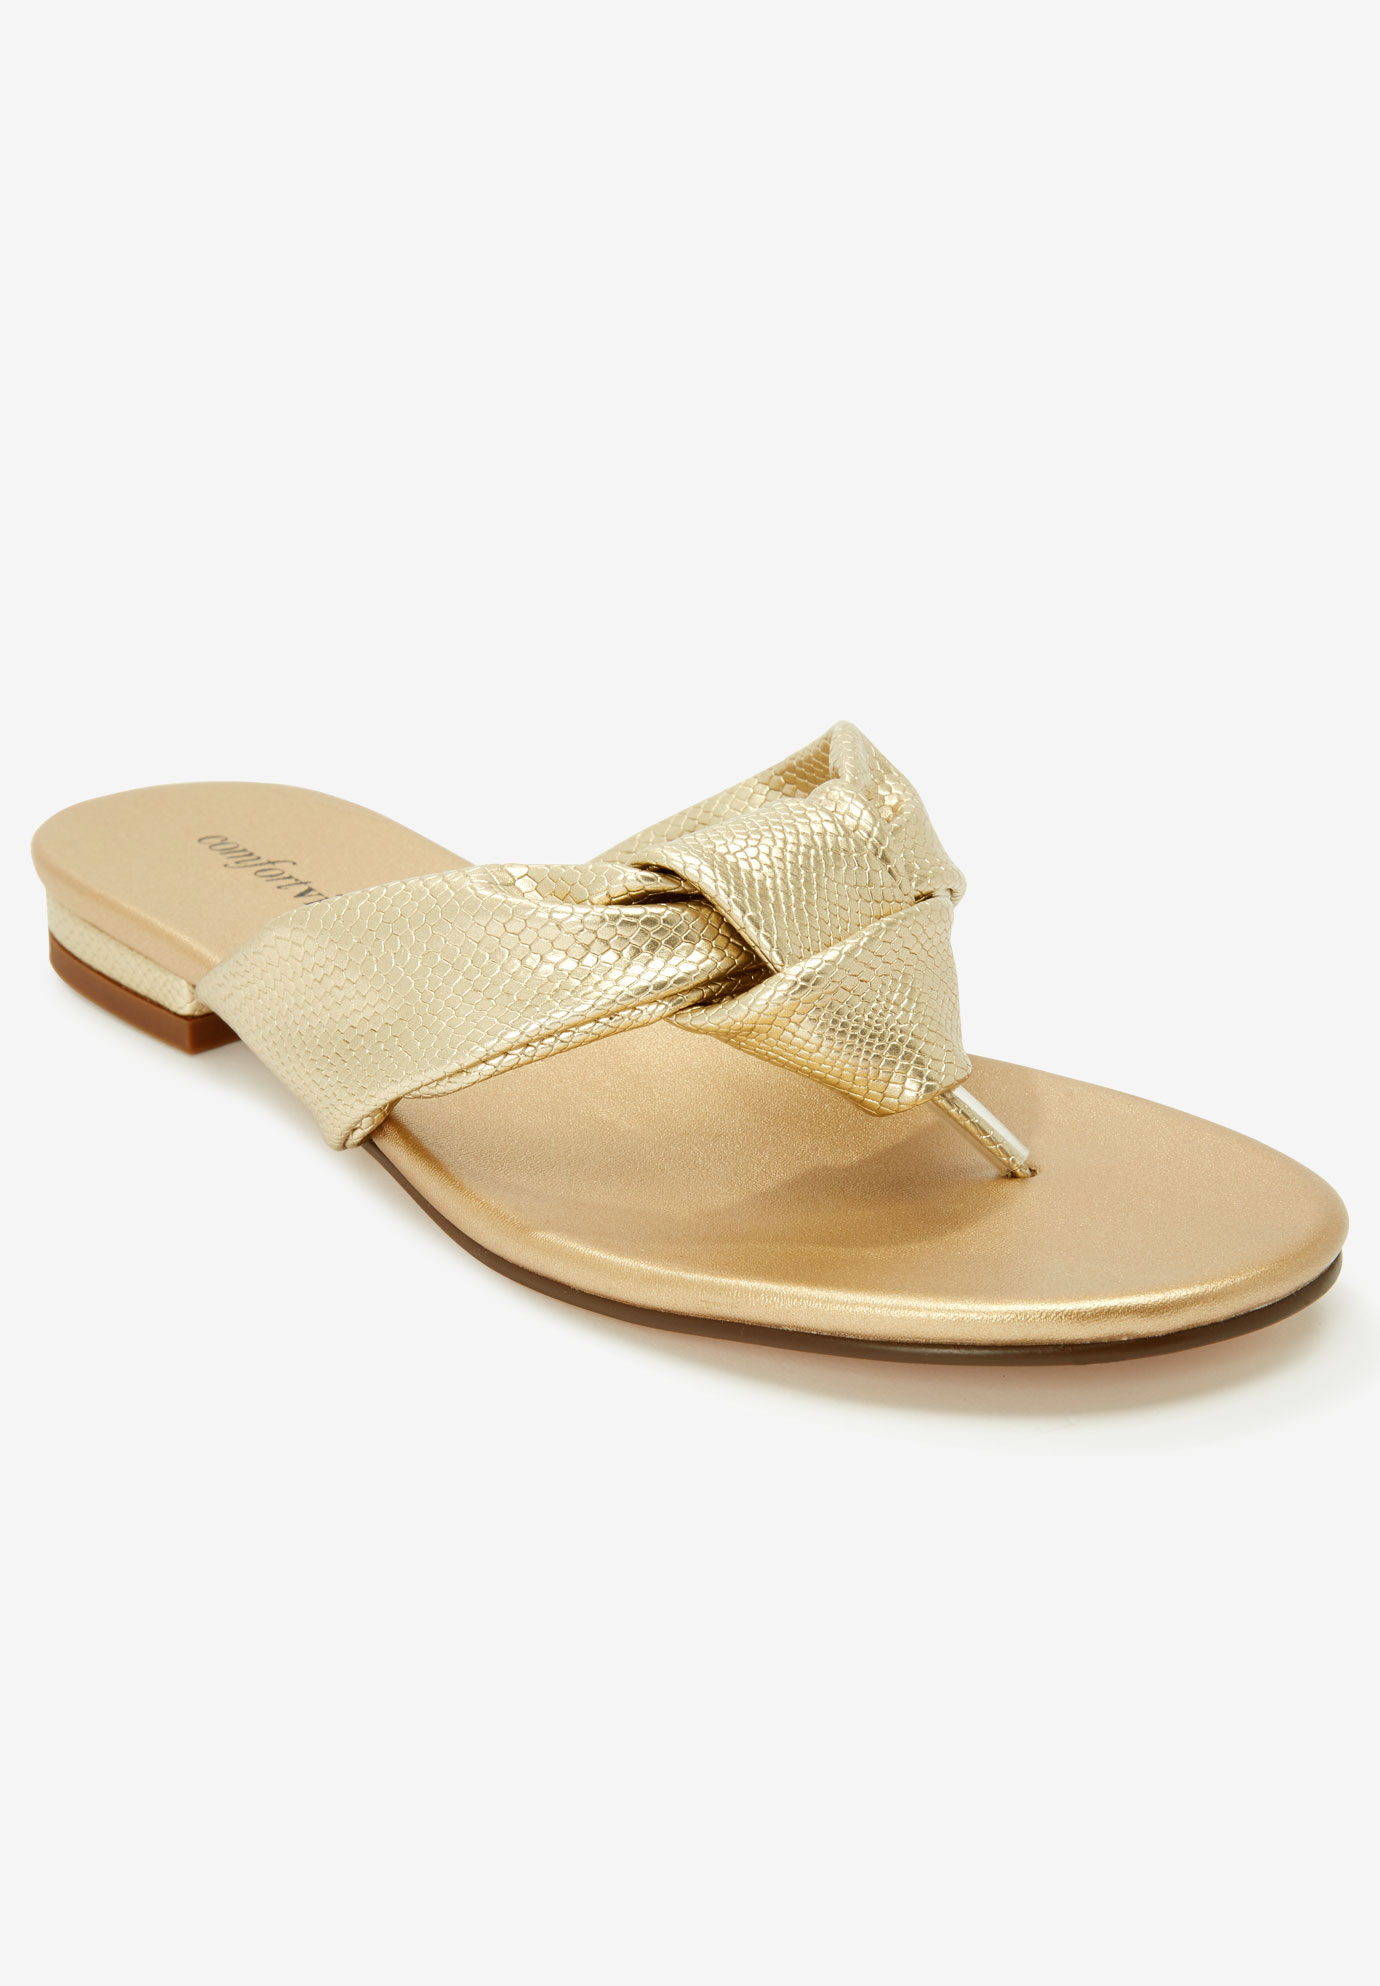 548d1dea4 The Cora Sandal by Comfortview®